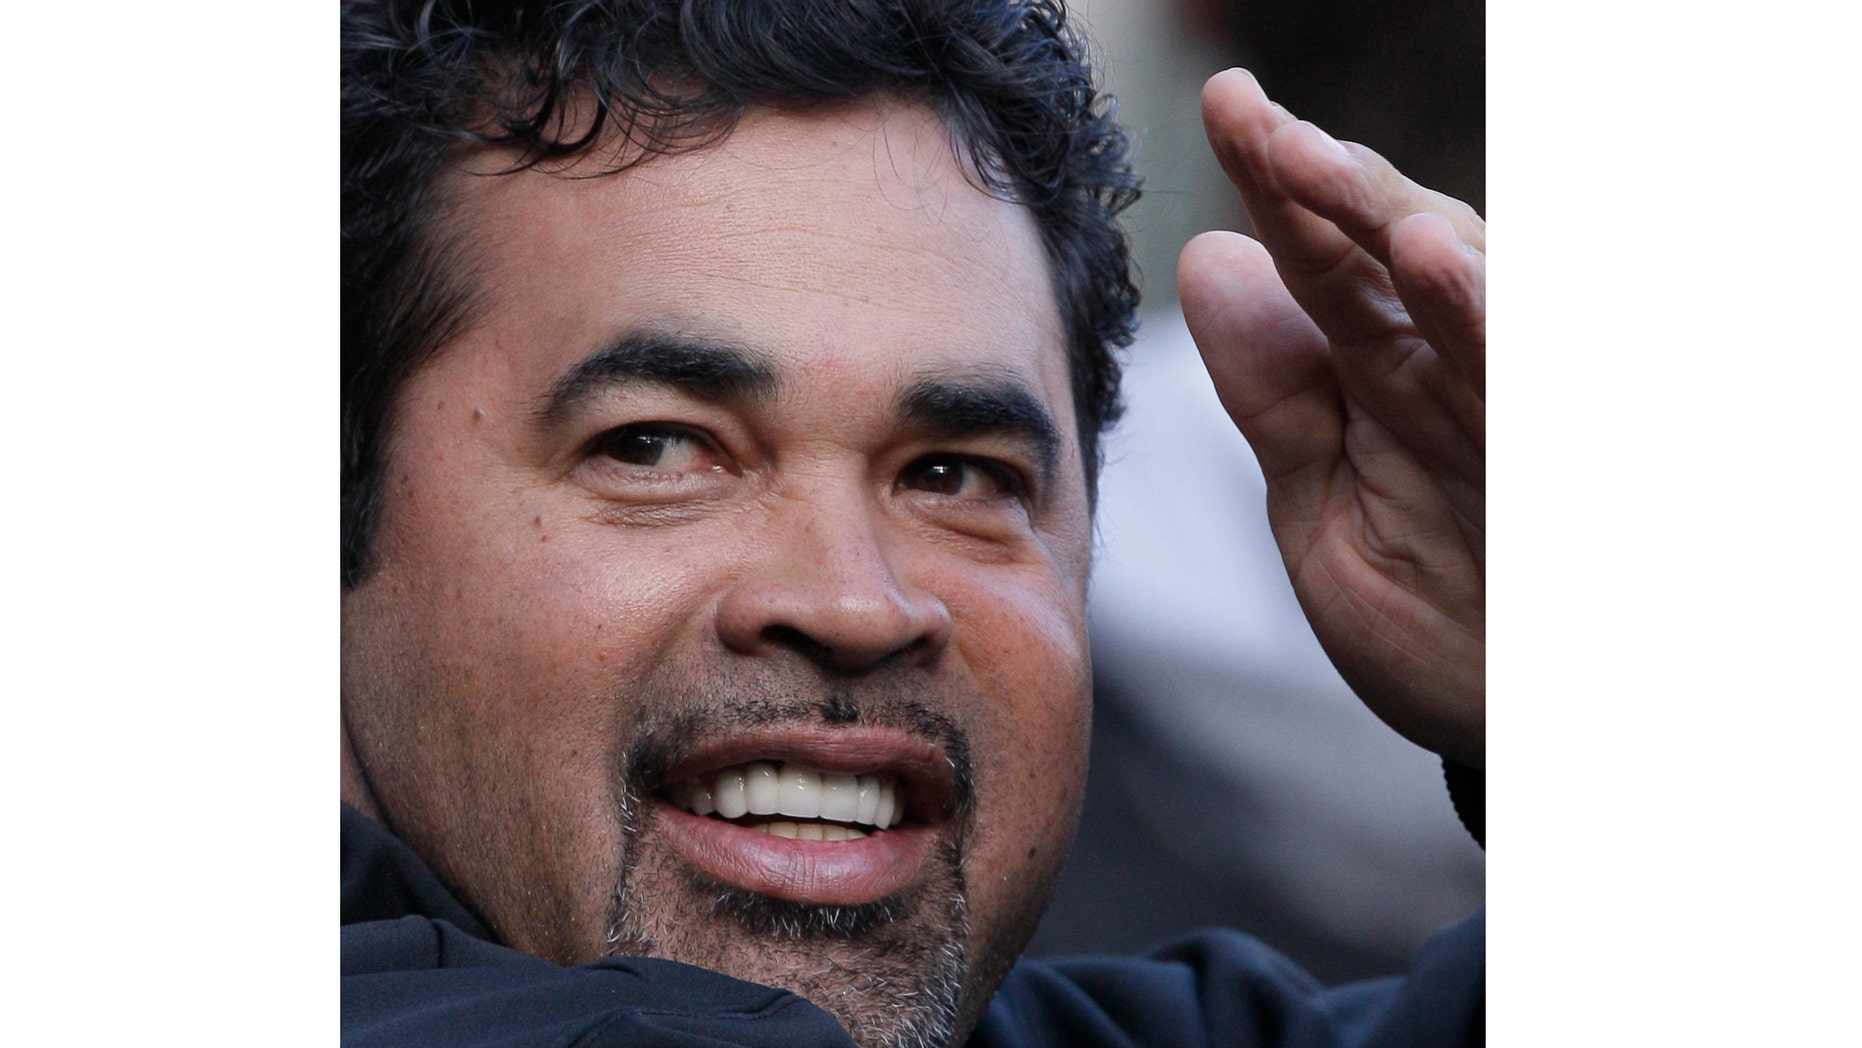 Sept 24: Ozzie Guillen smiles as he waves to fans.